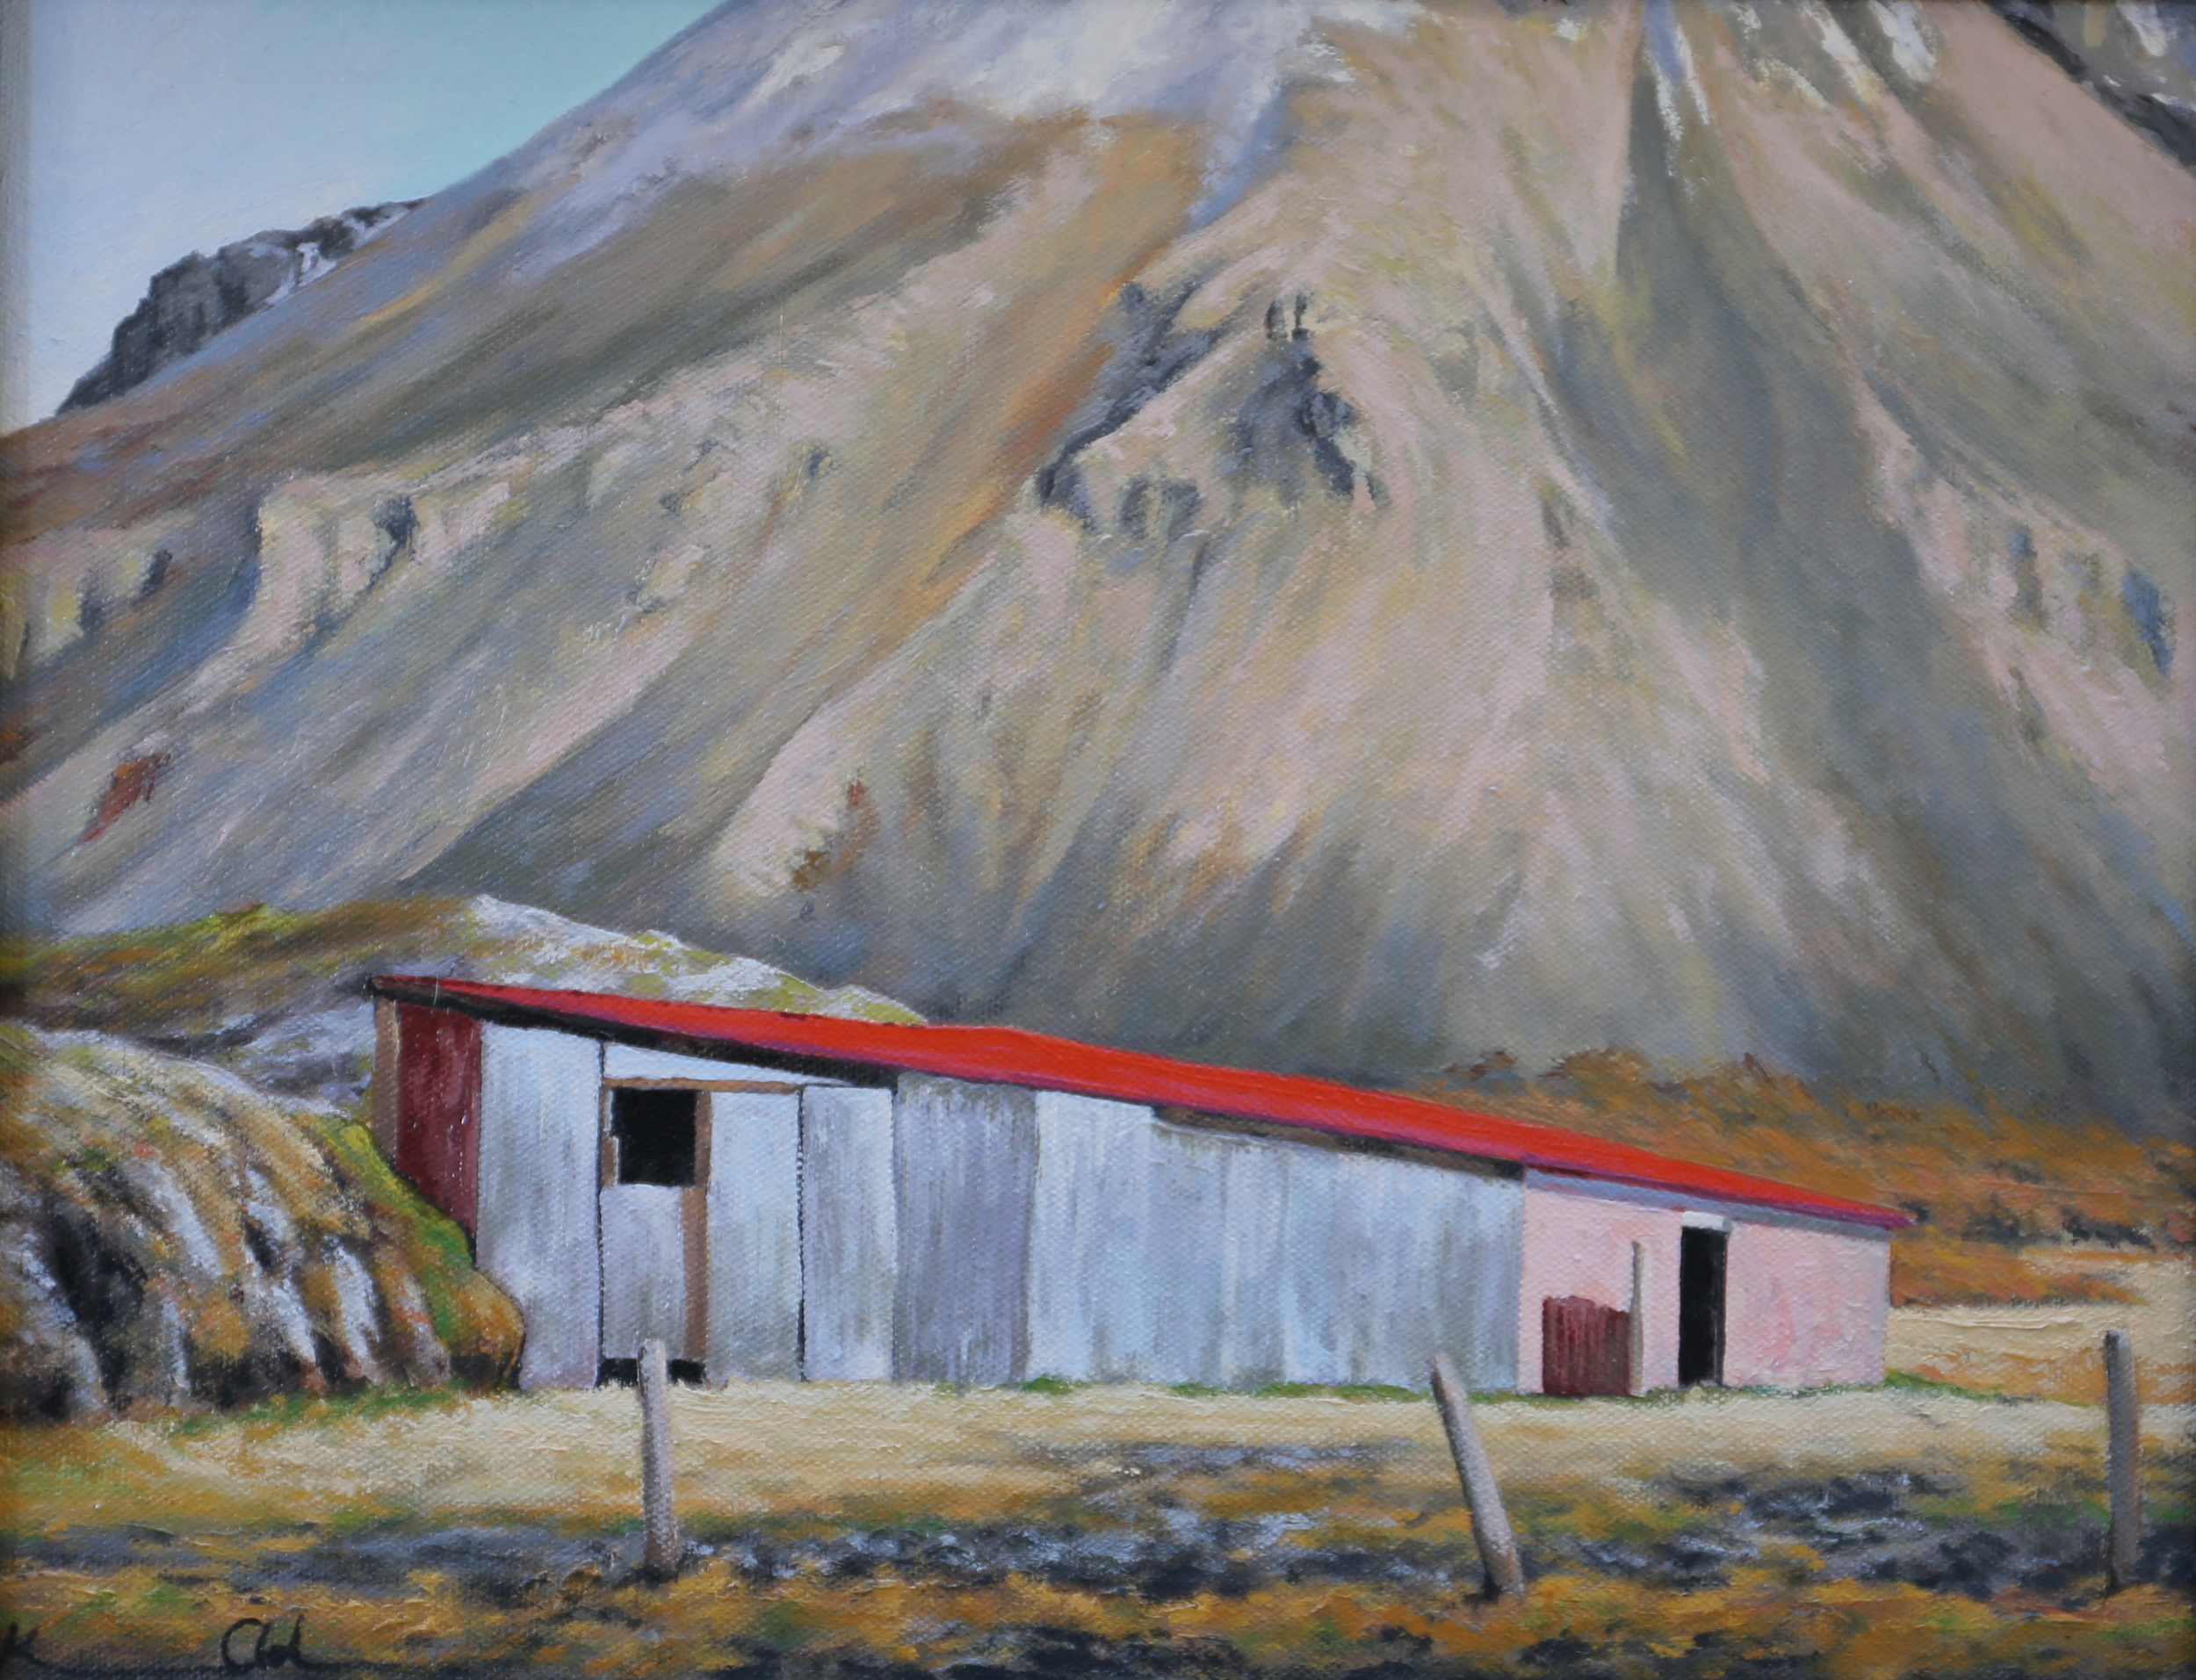 Icelandic Shed 11 X 14 oil on canvas board (sold)